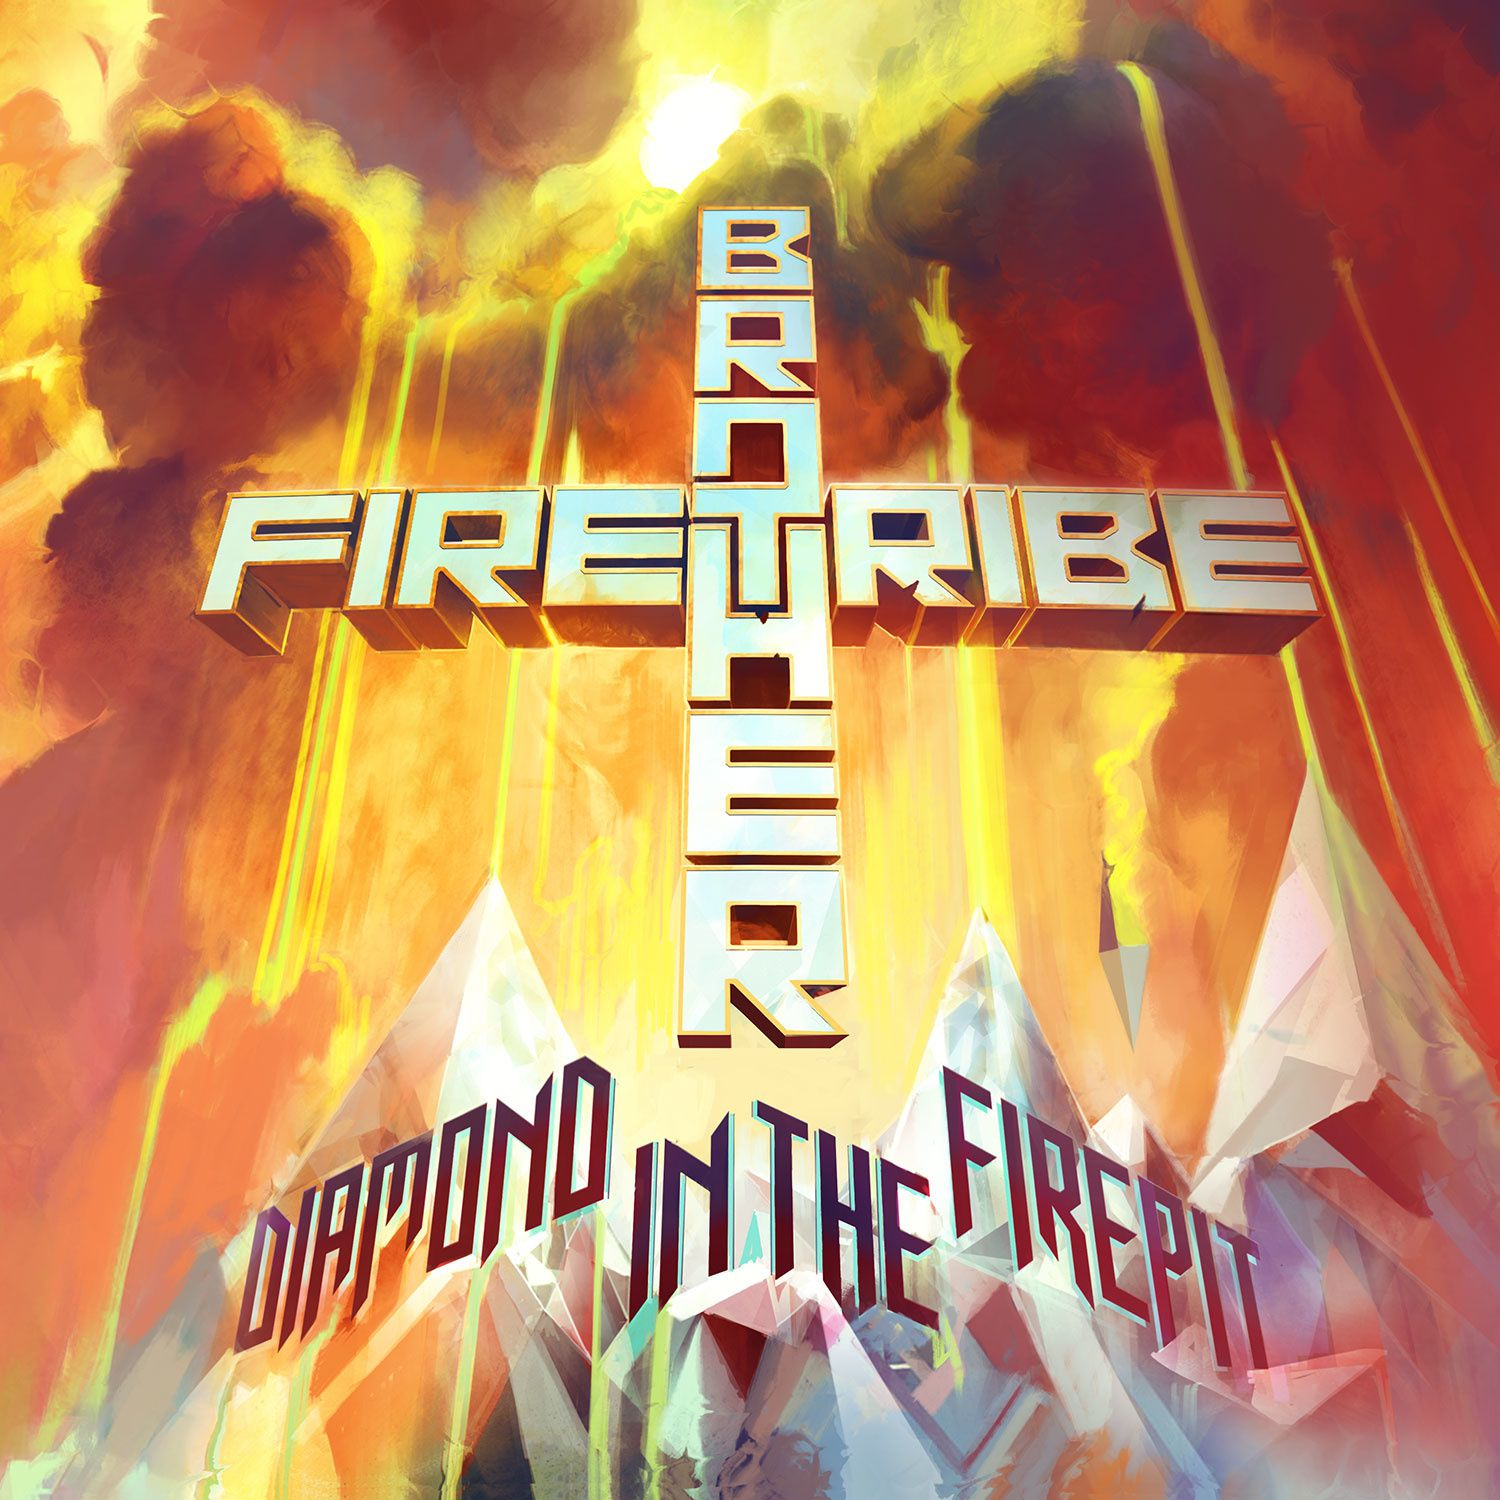 CD review BROTHER FIRETRIBE &quot&#x3B;Diamond in the firepit&quot&#x3B;